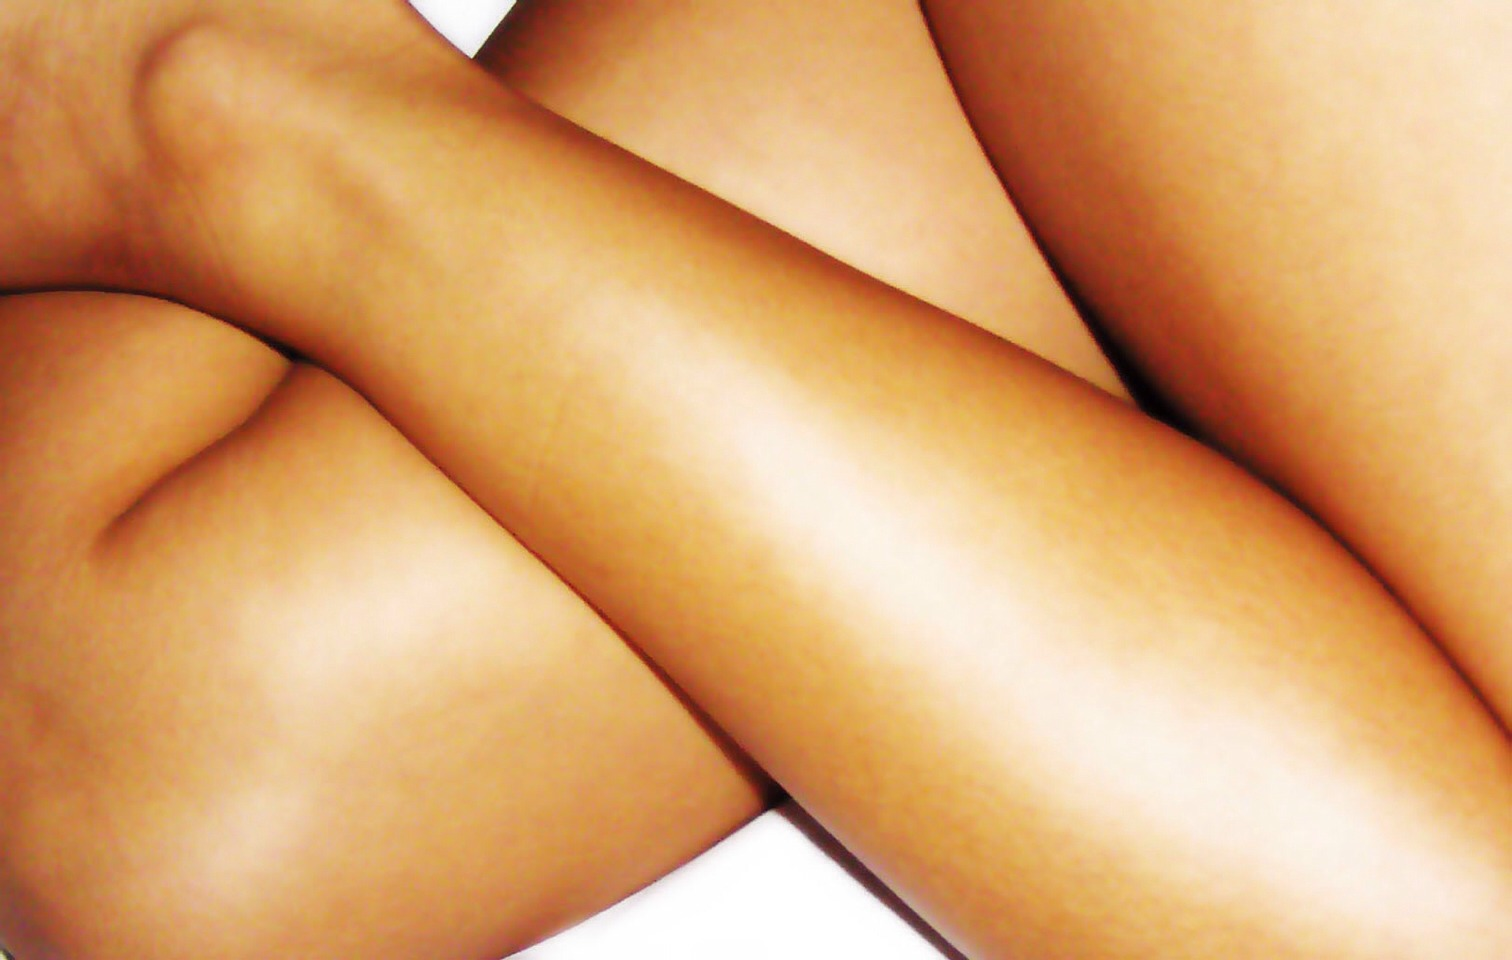 3- after shaving put Vaseline on legs and arms to make them soft and to get rid of razor burn